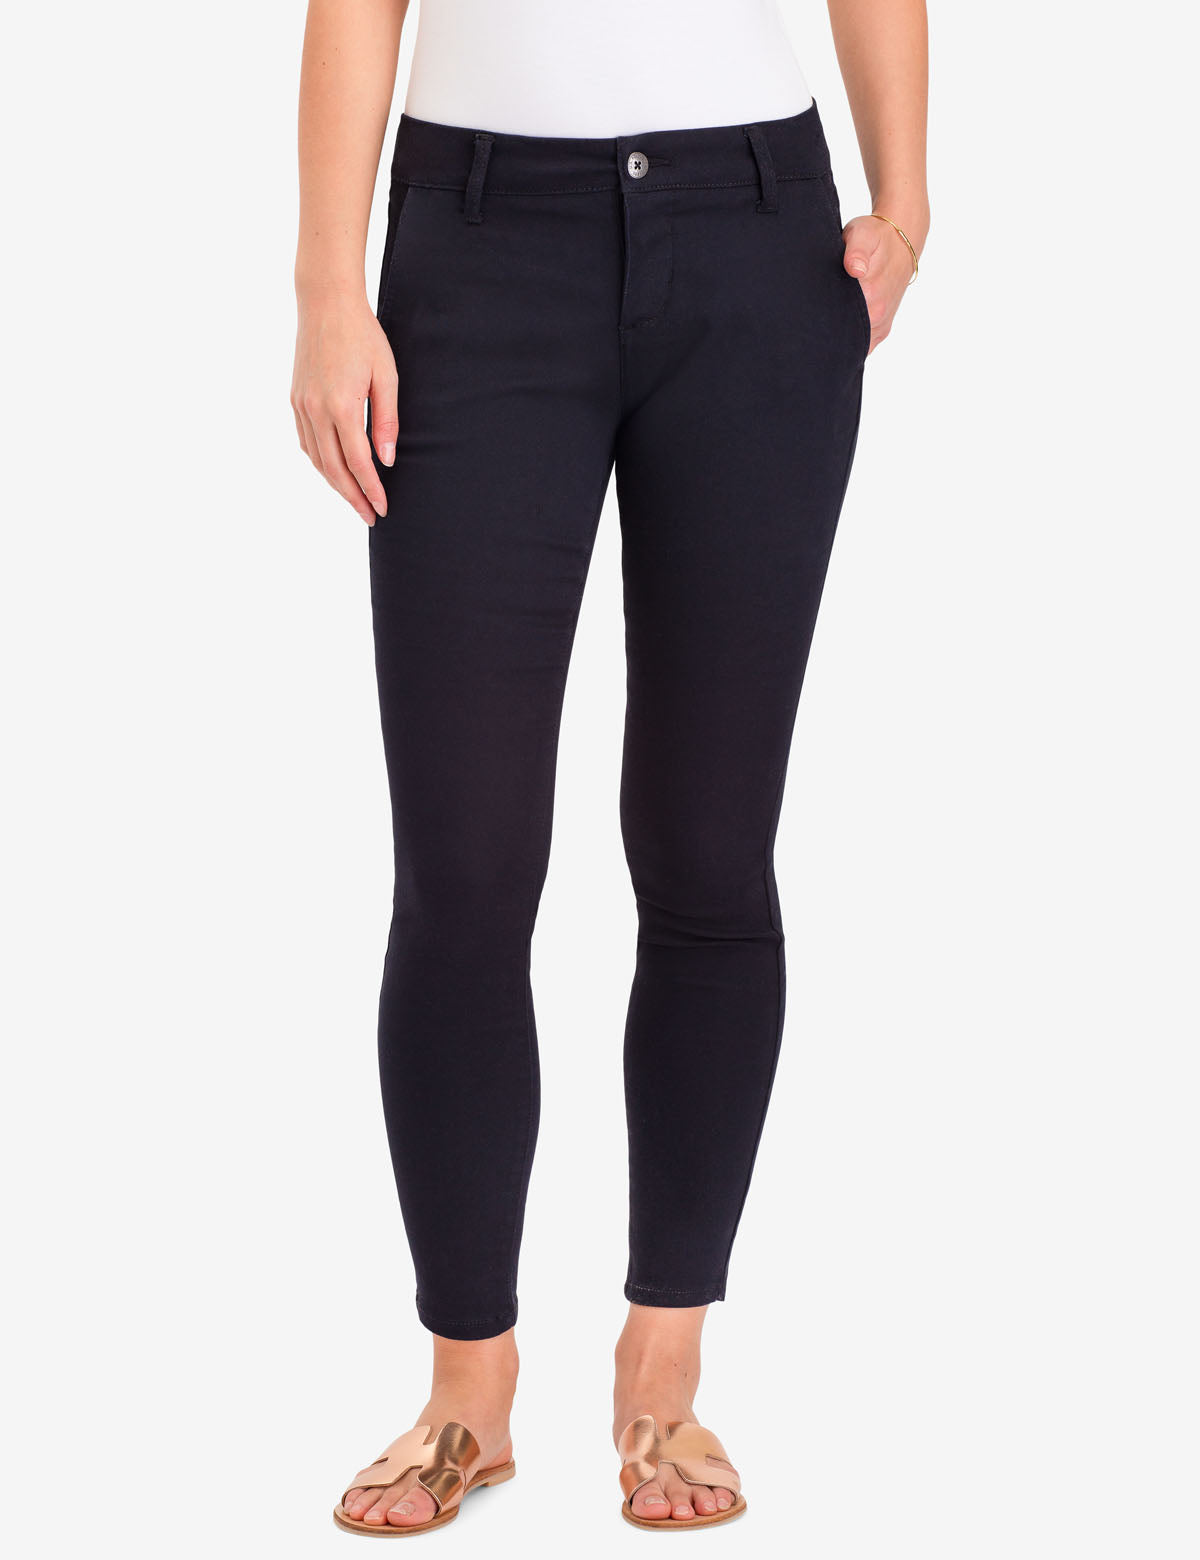 CHINO JEGGING - U.S. Polo Assn.